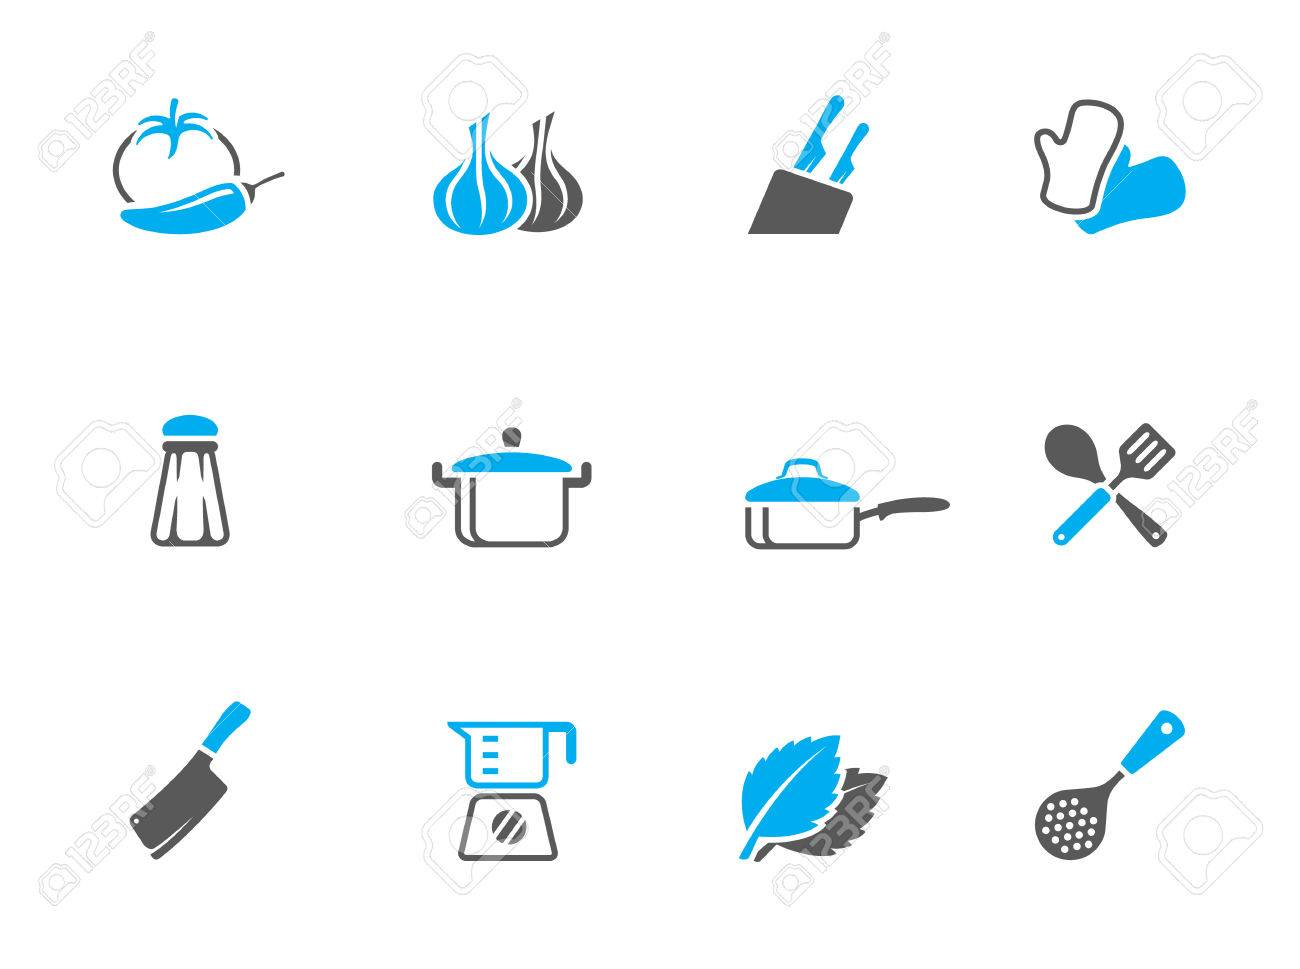 Cooking icons in duo tone colors. EPS 10. Stock Vector - 23775128